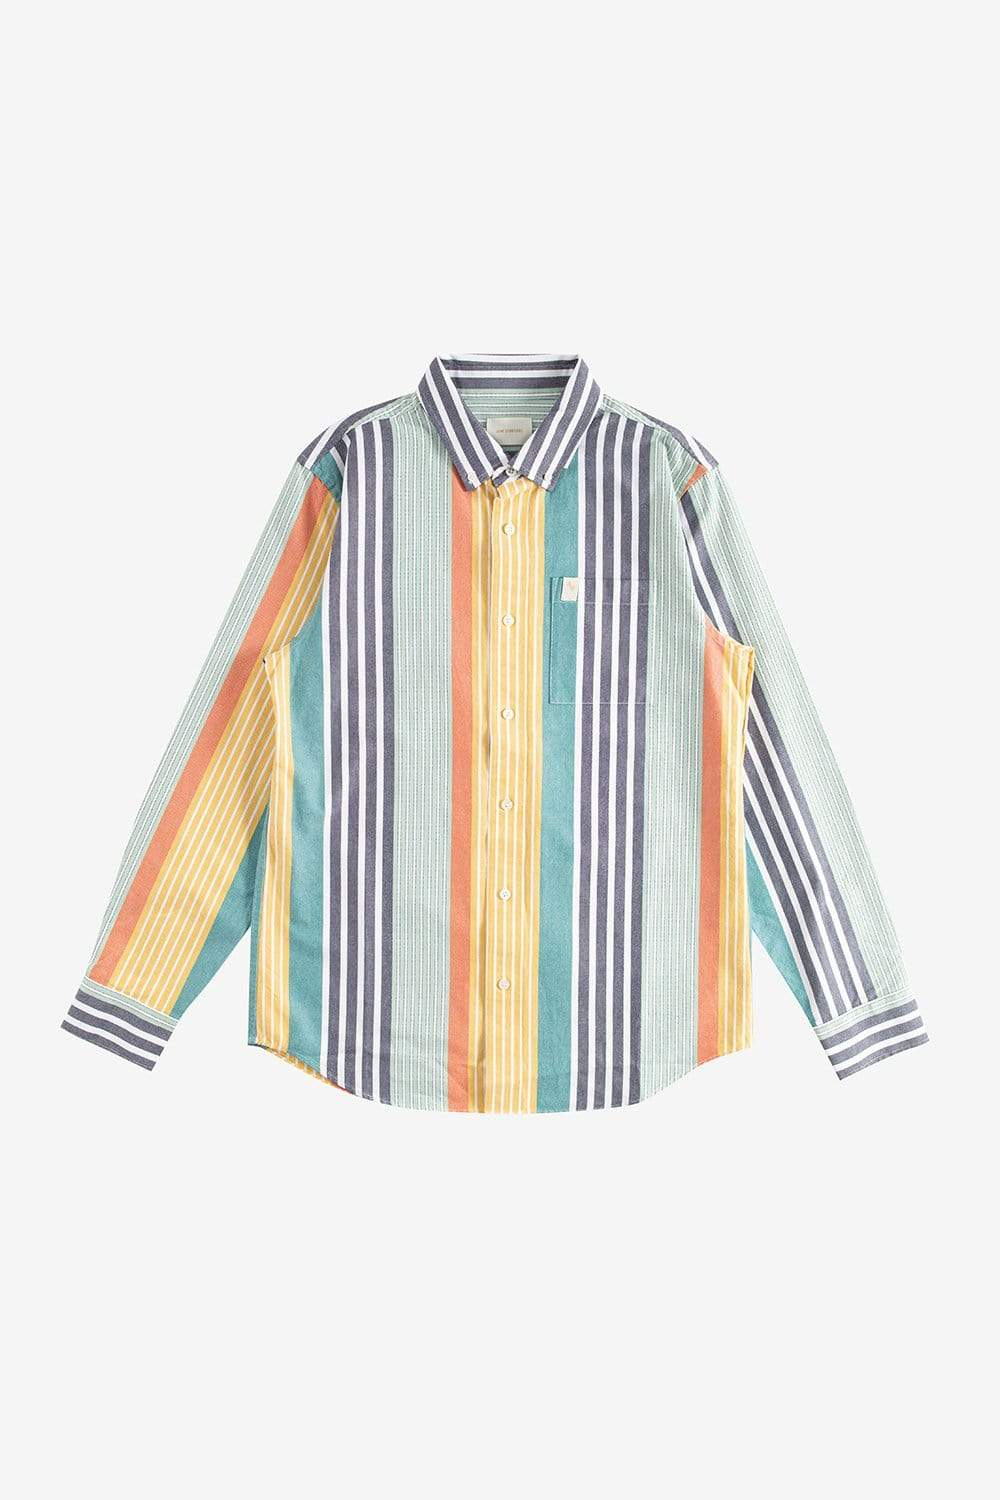 Aime Leon Dore Apparel Striped Oxford Shirt